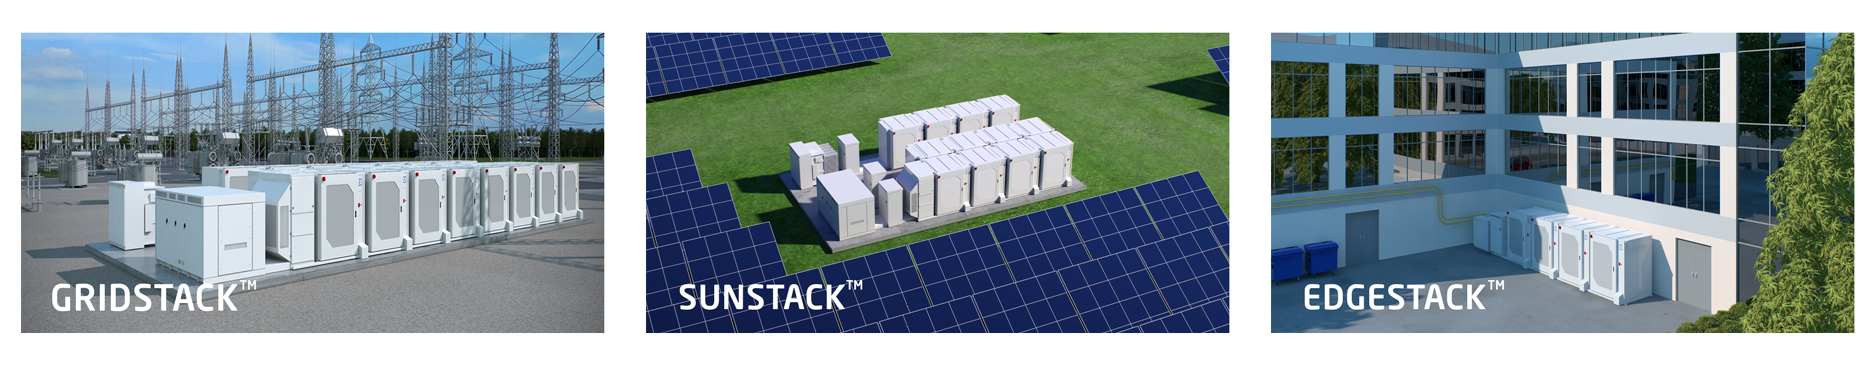 Fluence 3 purpose-built energy storage systems